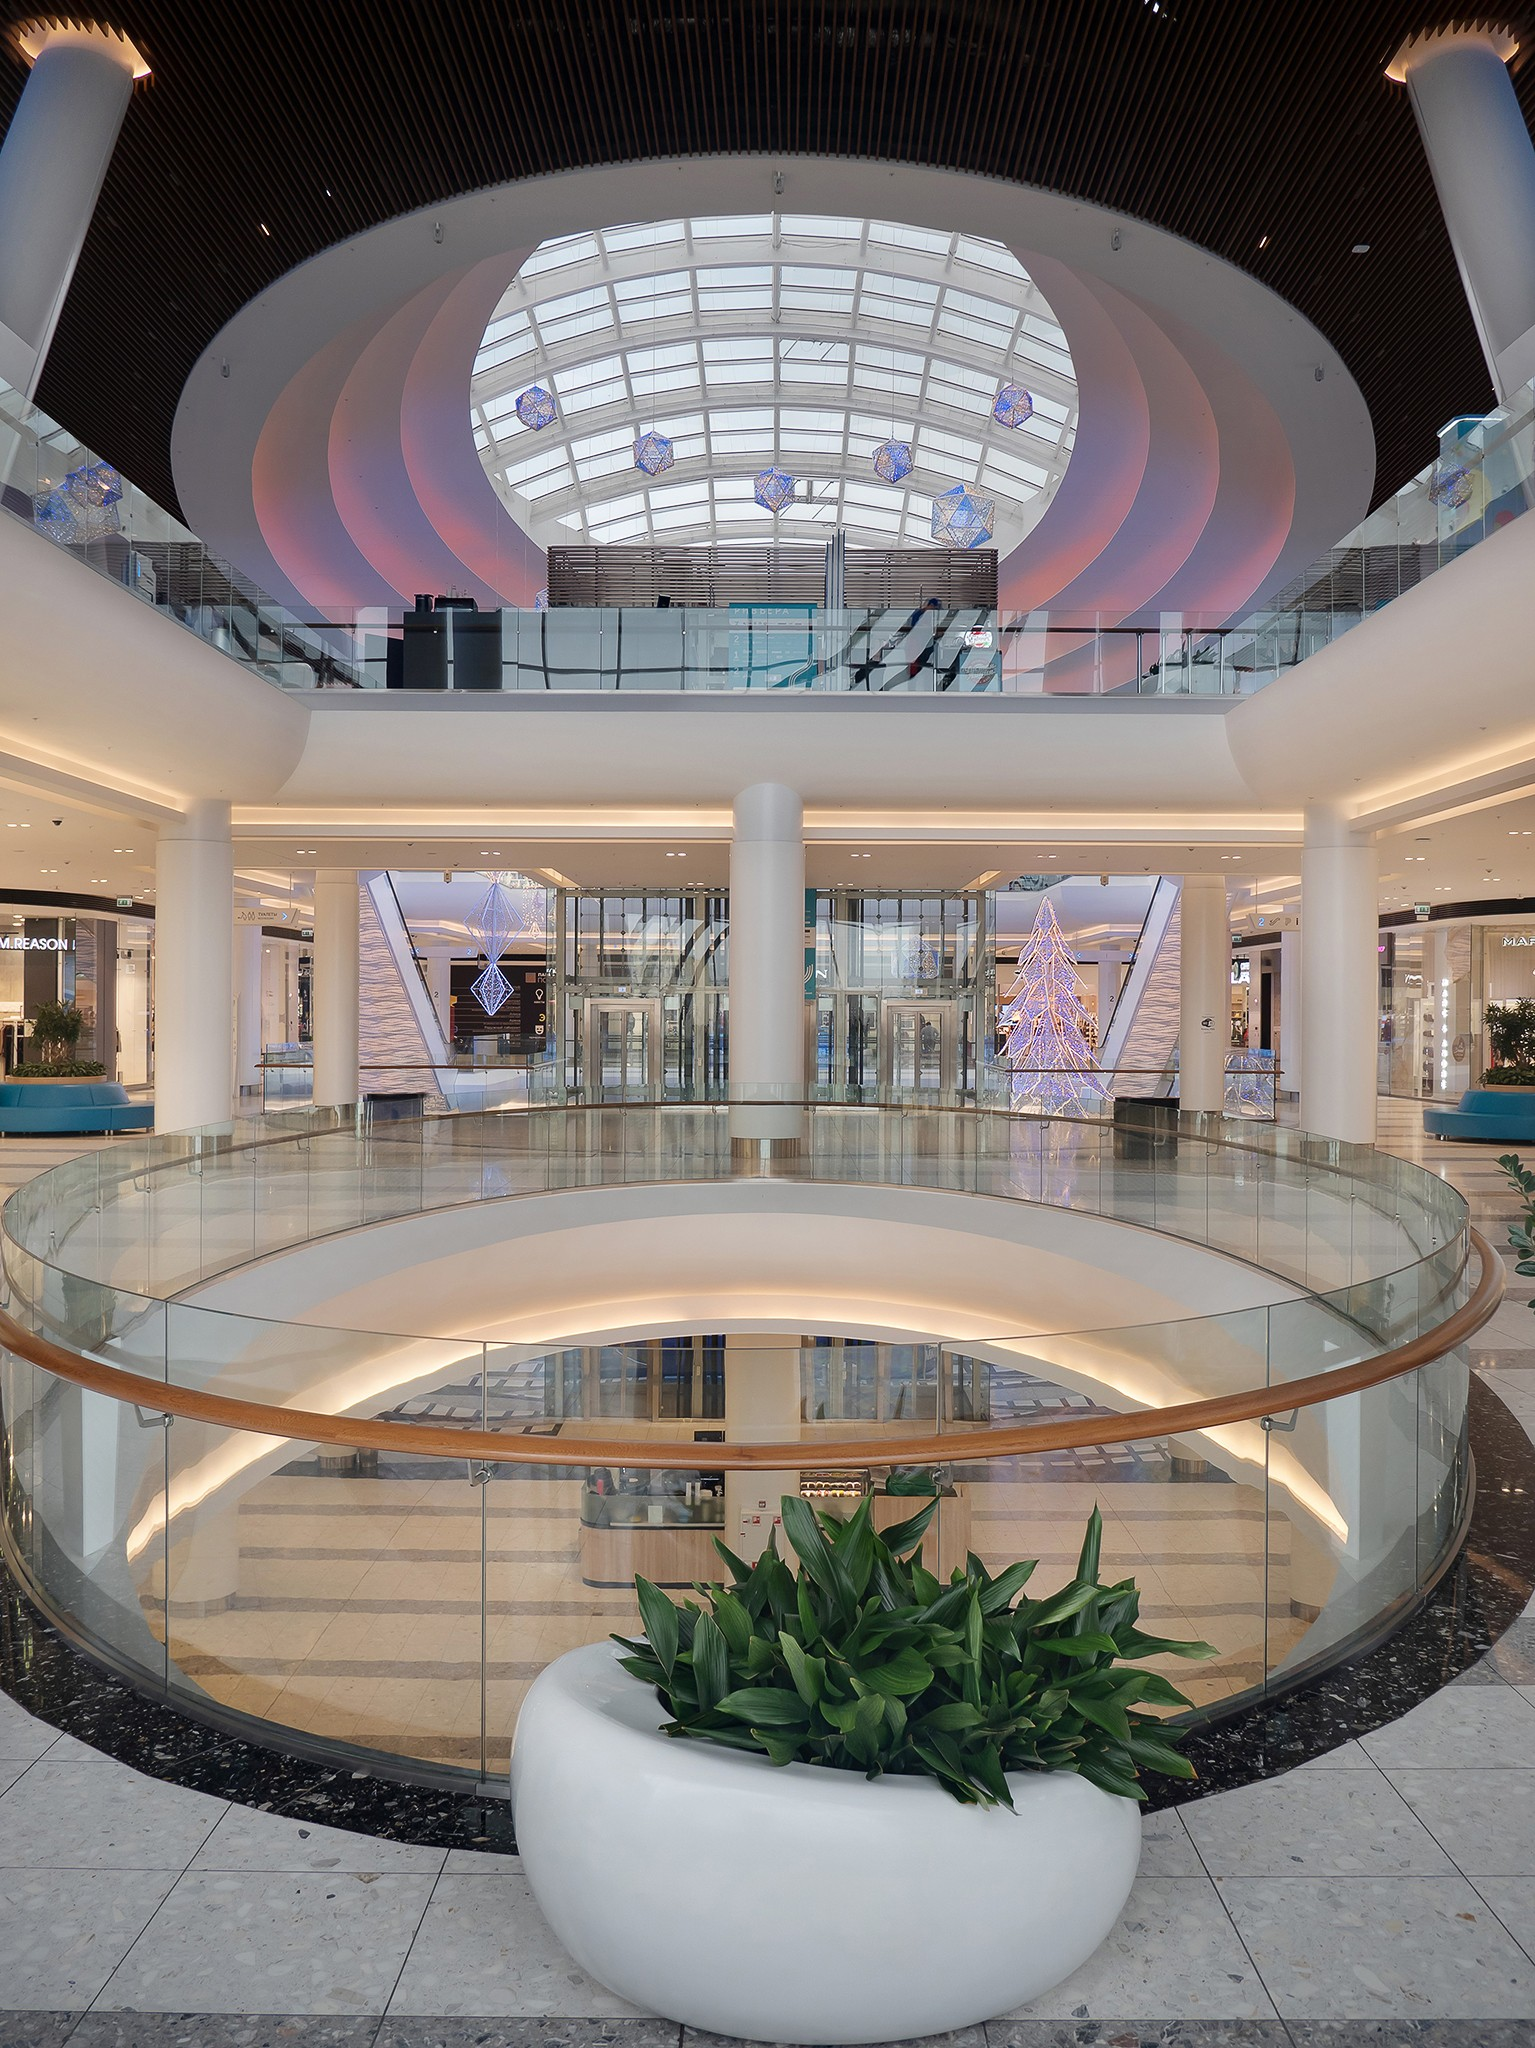 Photos of halls of shopping centers. Professional shooting of interiors.